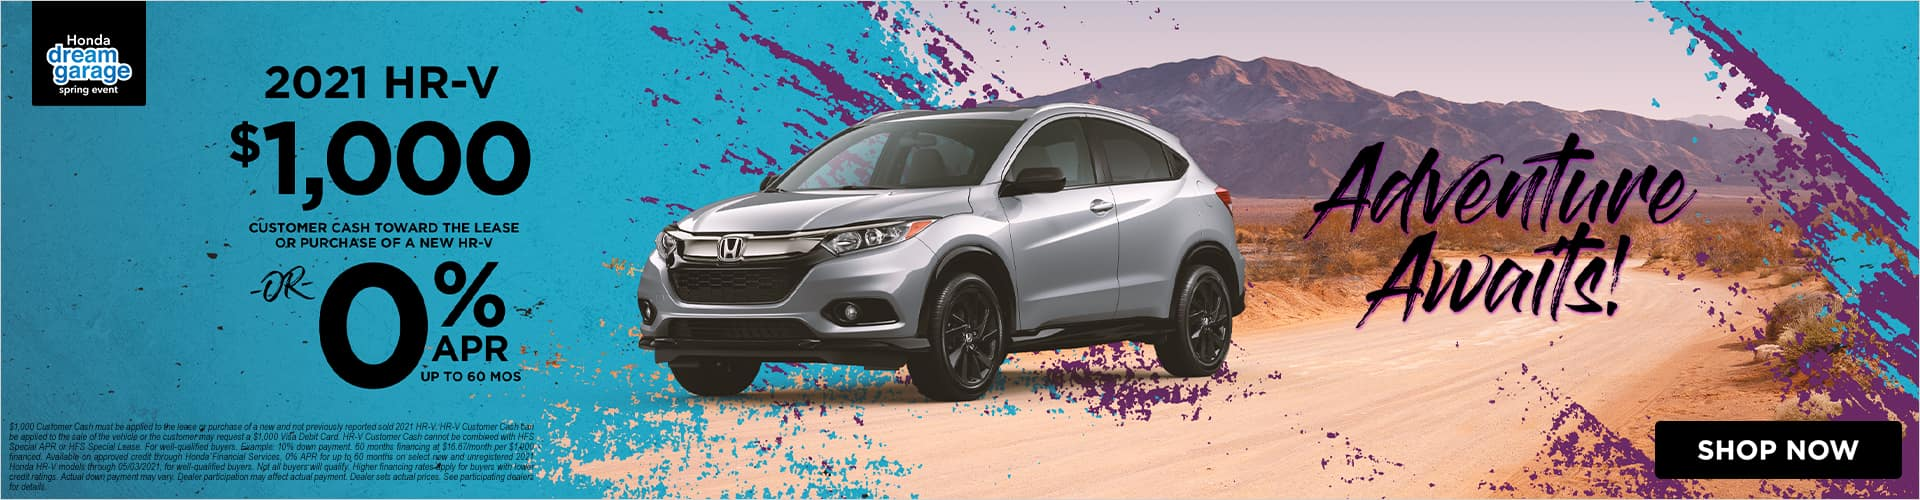 0% APR on the 2021 Honda HR-V